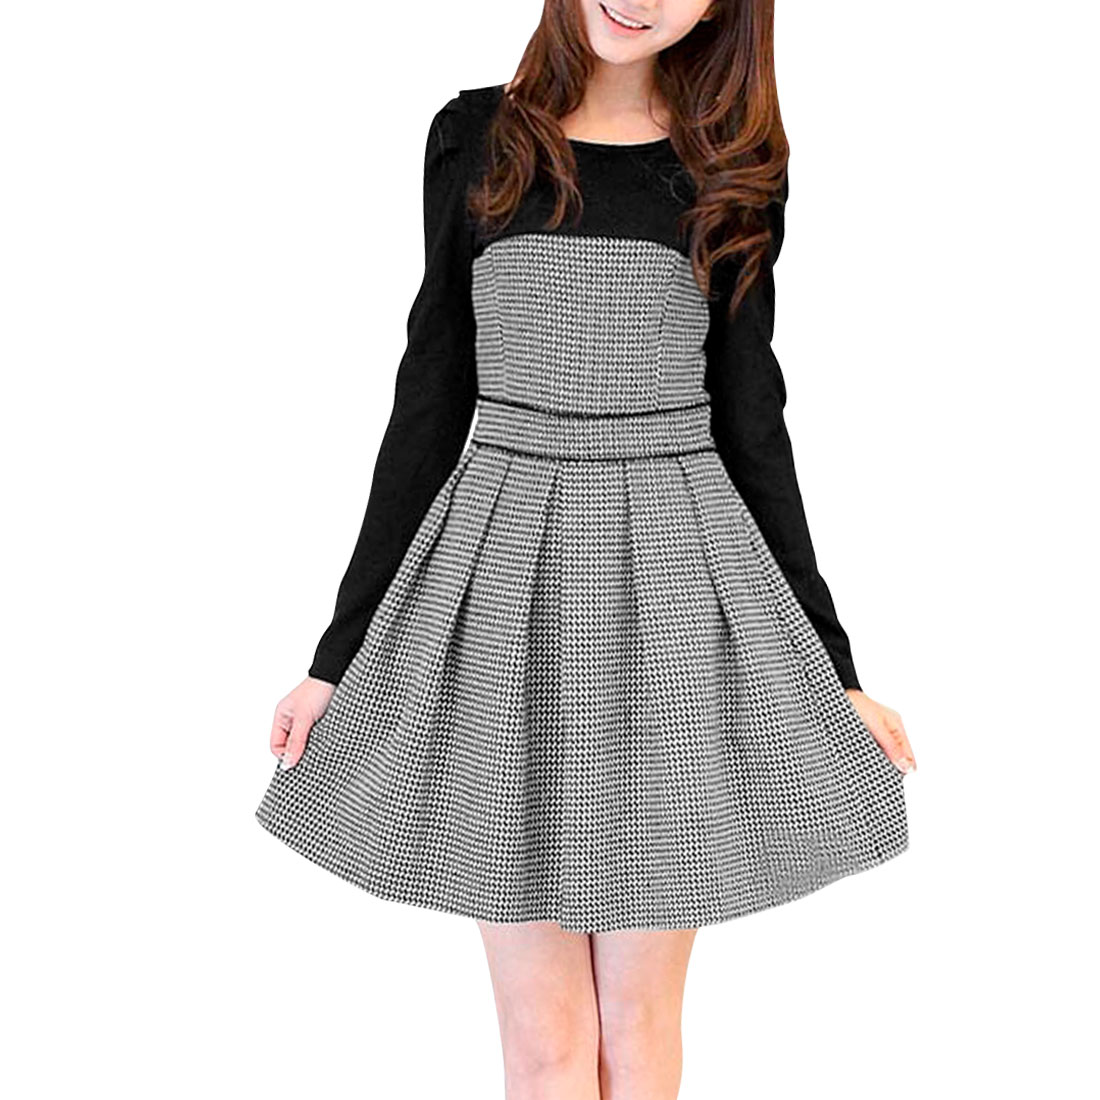 Ladies Black White Scoop Neck Houndstooth Pattern Panel Dress Xs